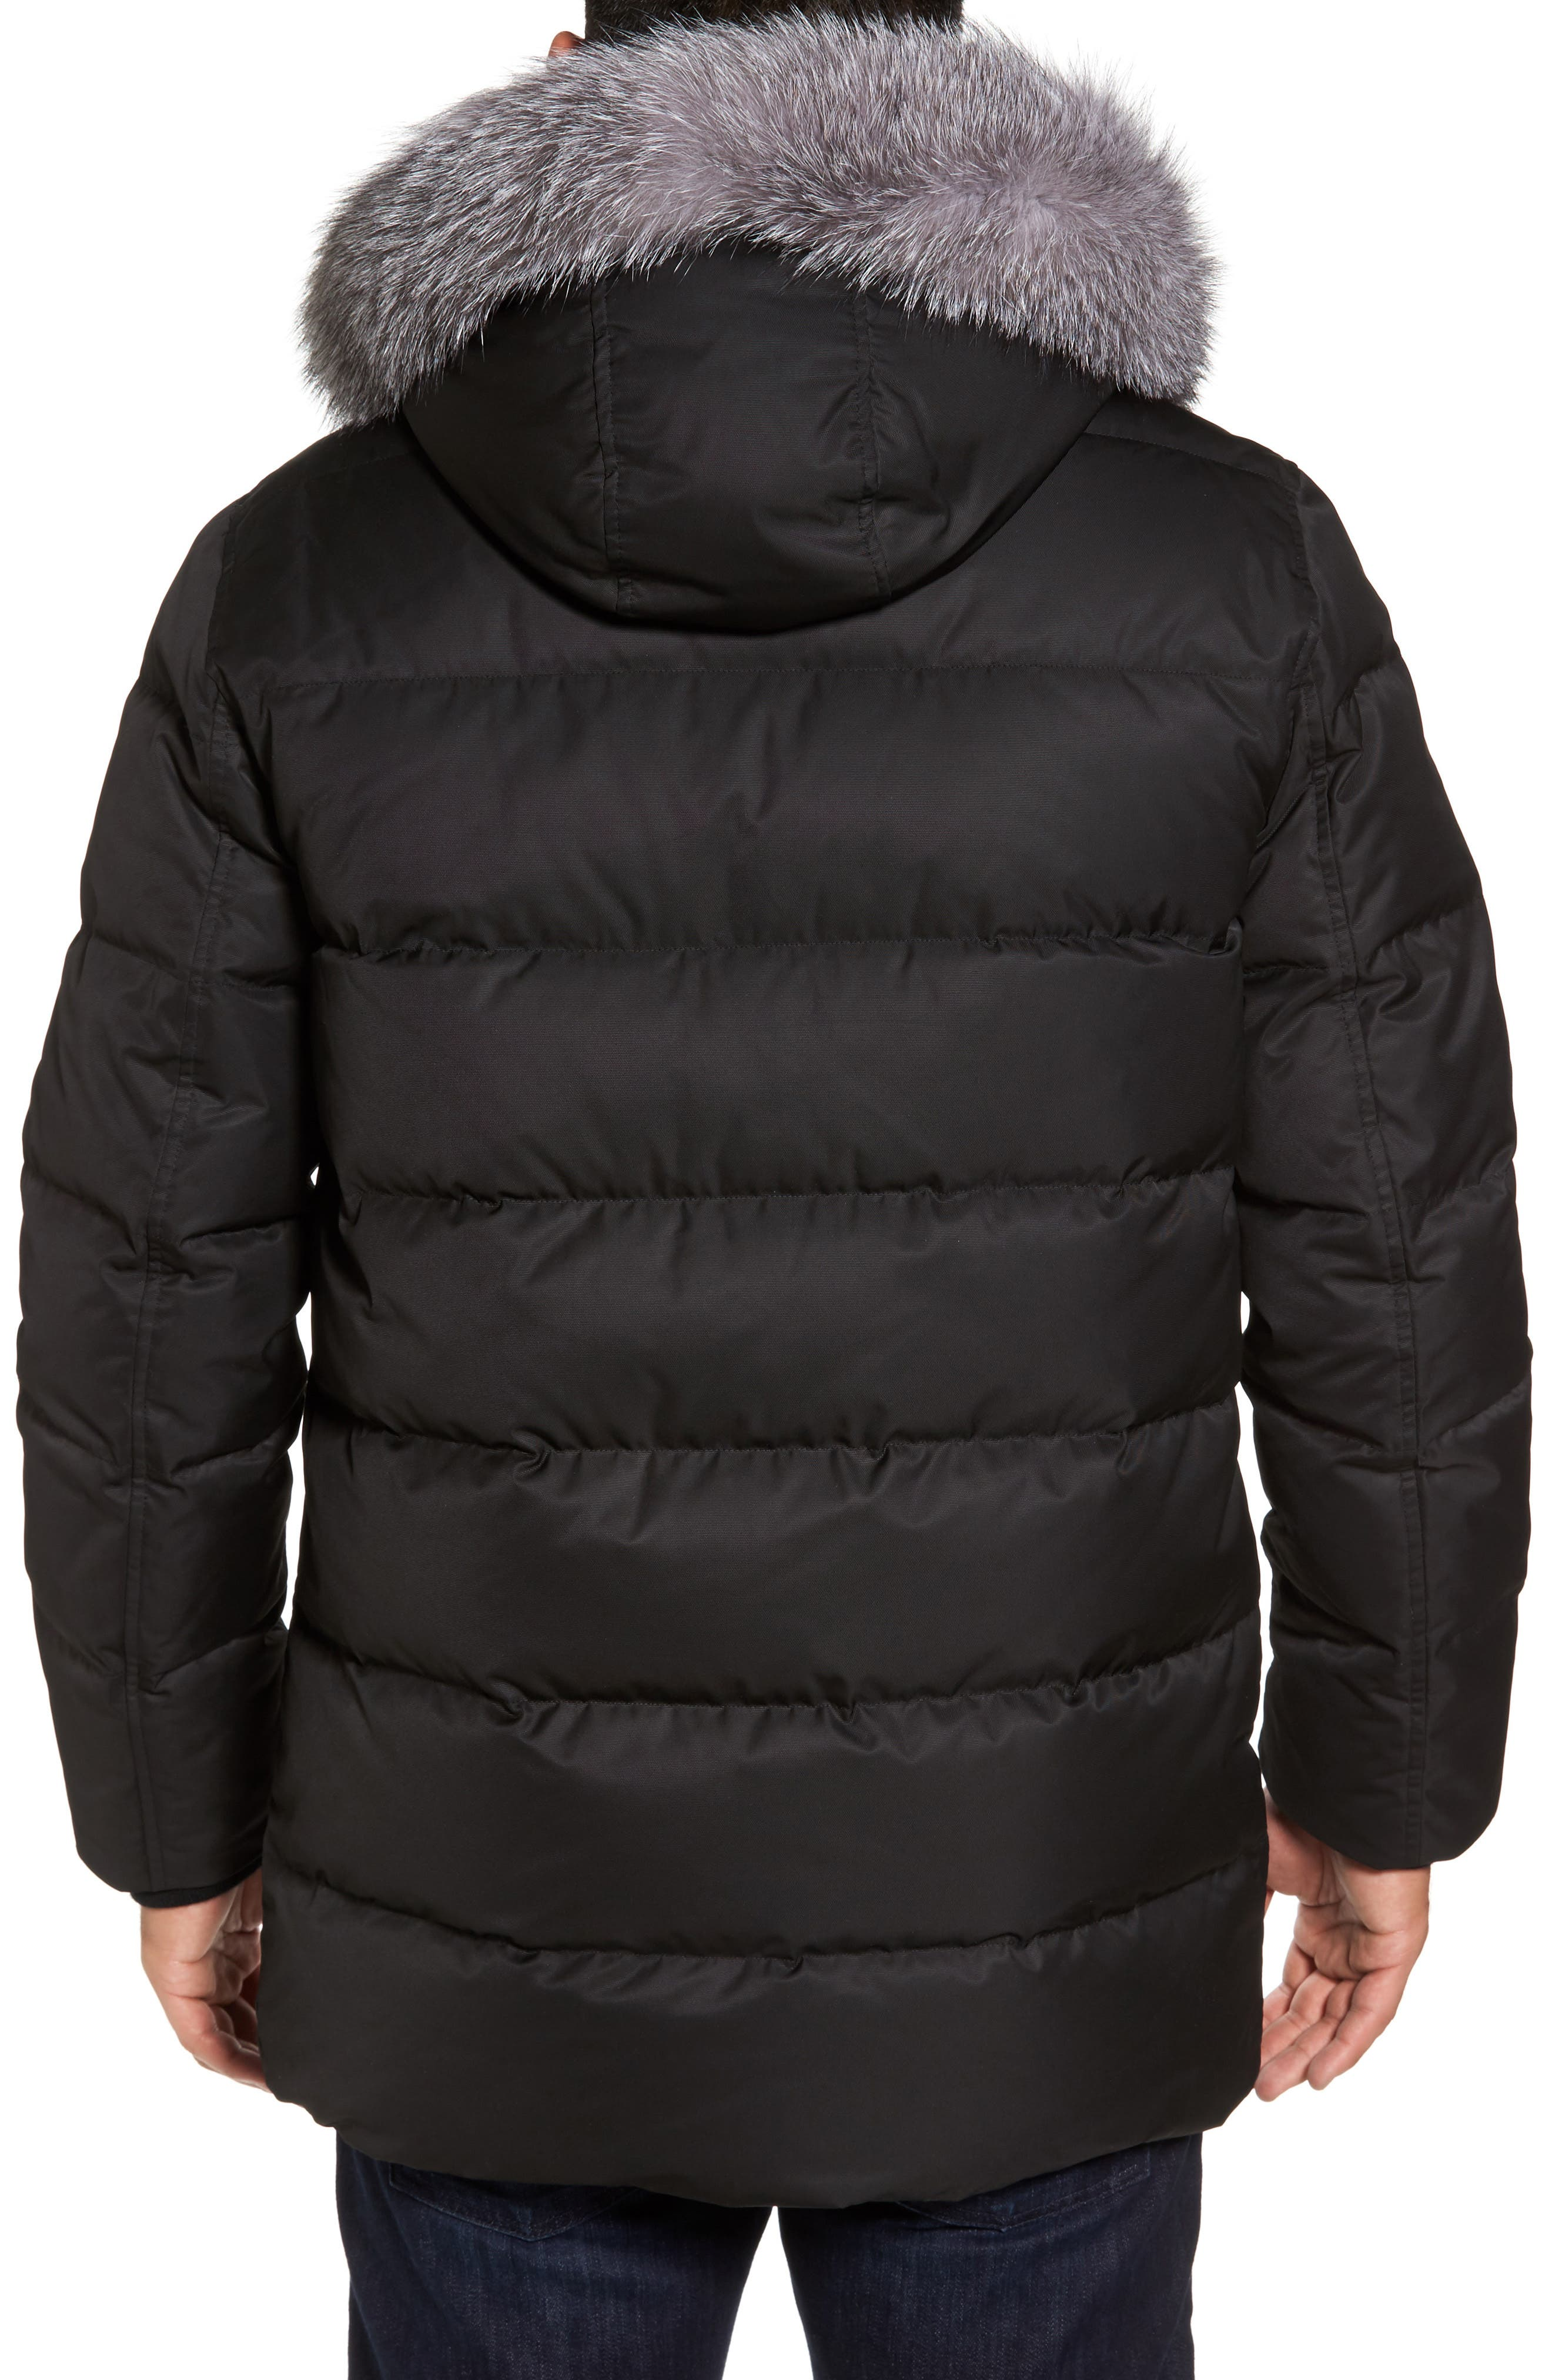 Alternate Image 2  - Andrew Marc Quilted Down Jacket with Genuine Fox Fur Trim